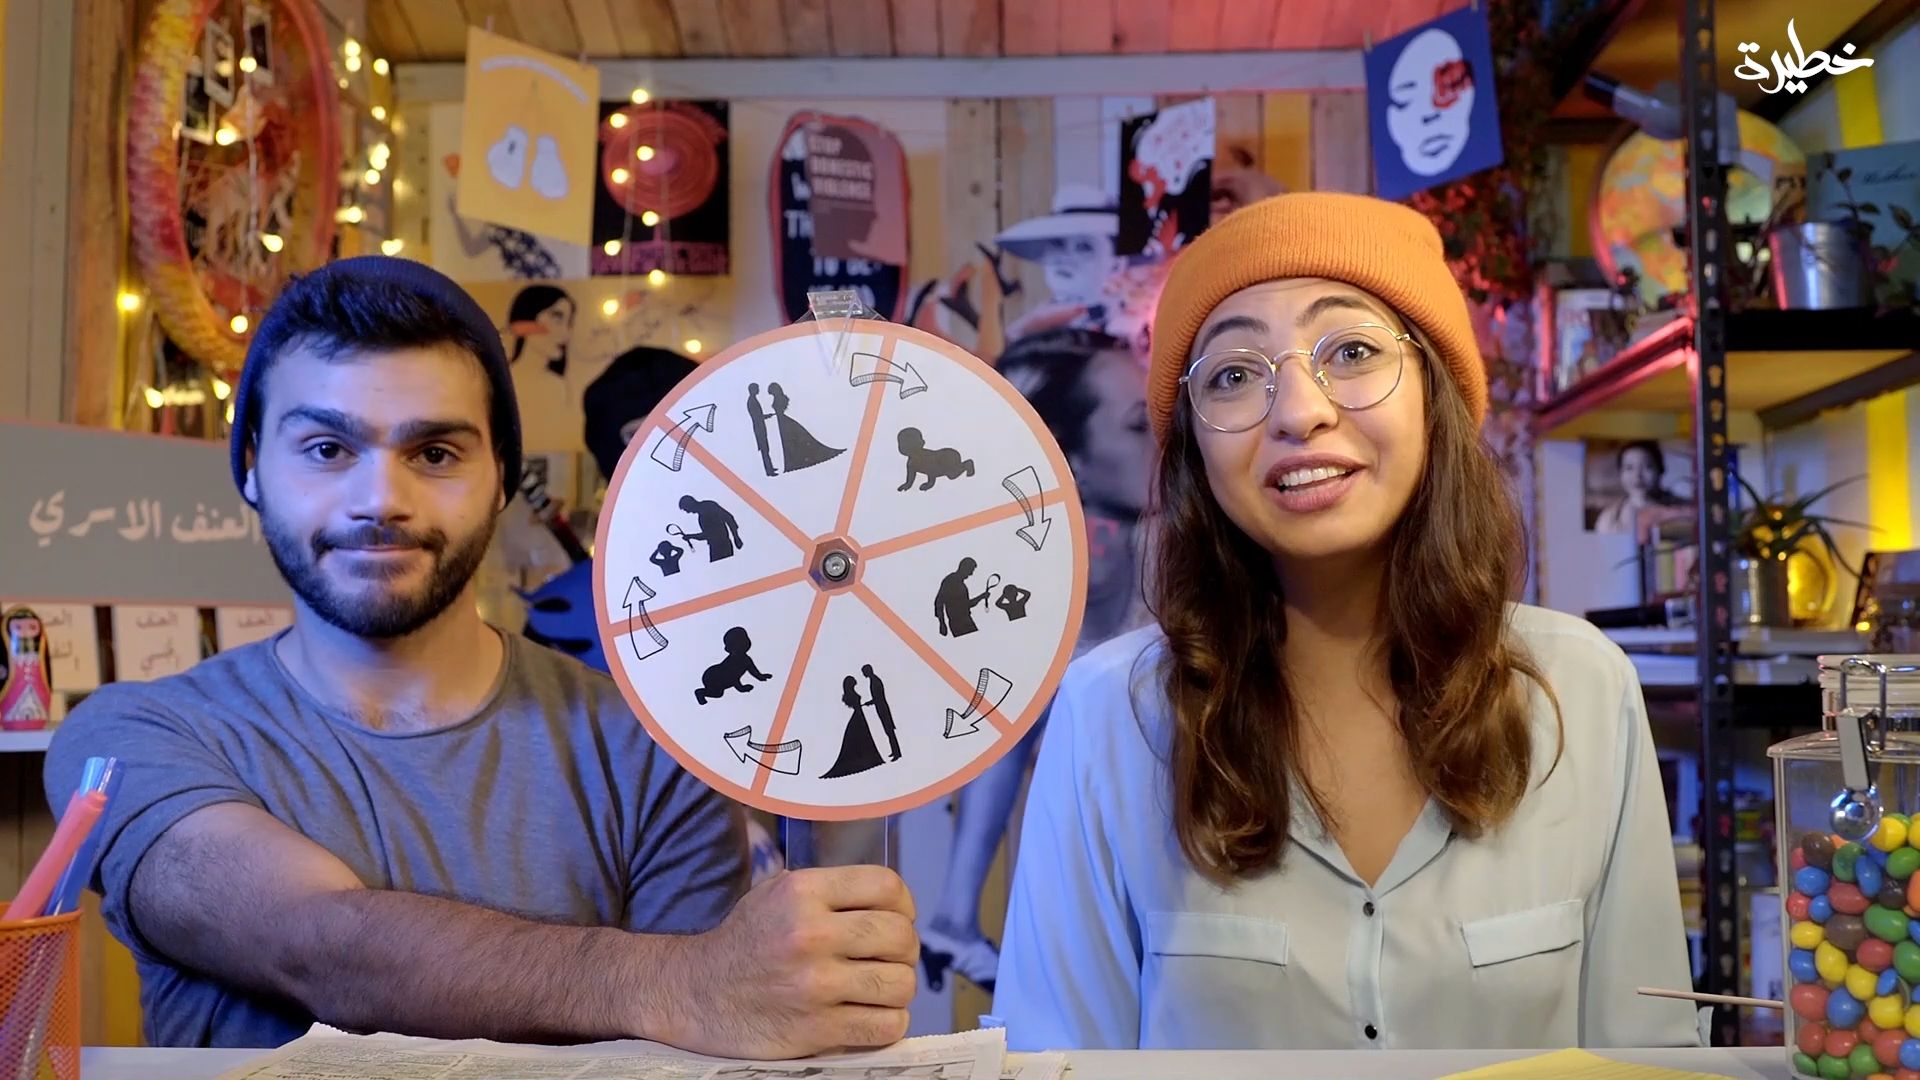 The final episode of Smi'touha Minni tackles men's issues (Courtesy of Amanda Abou Abdallah)